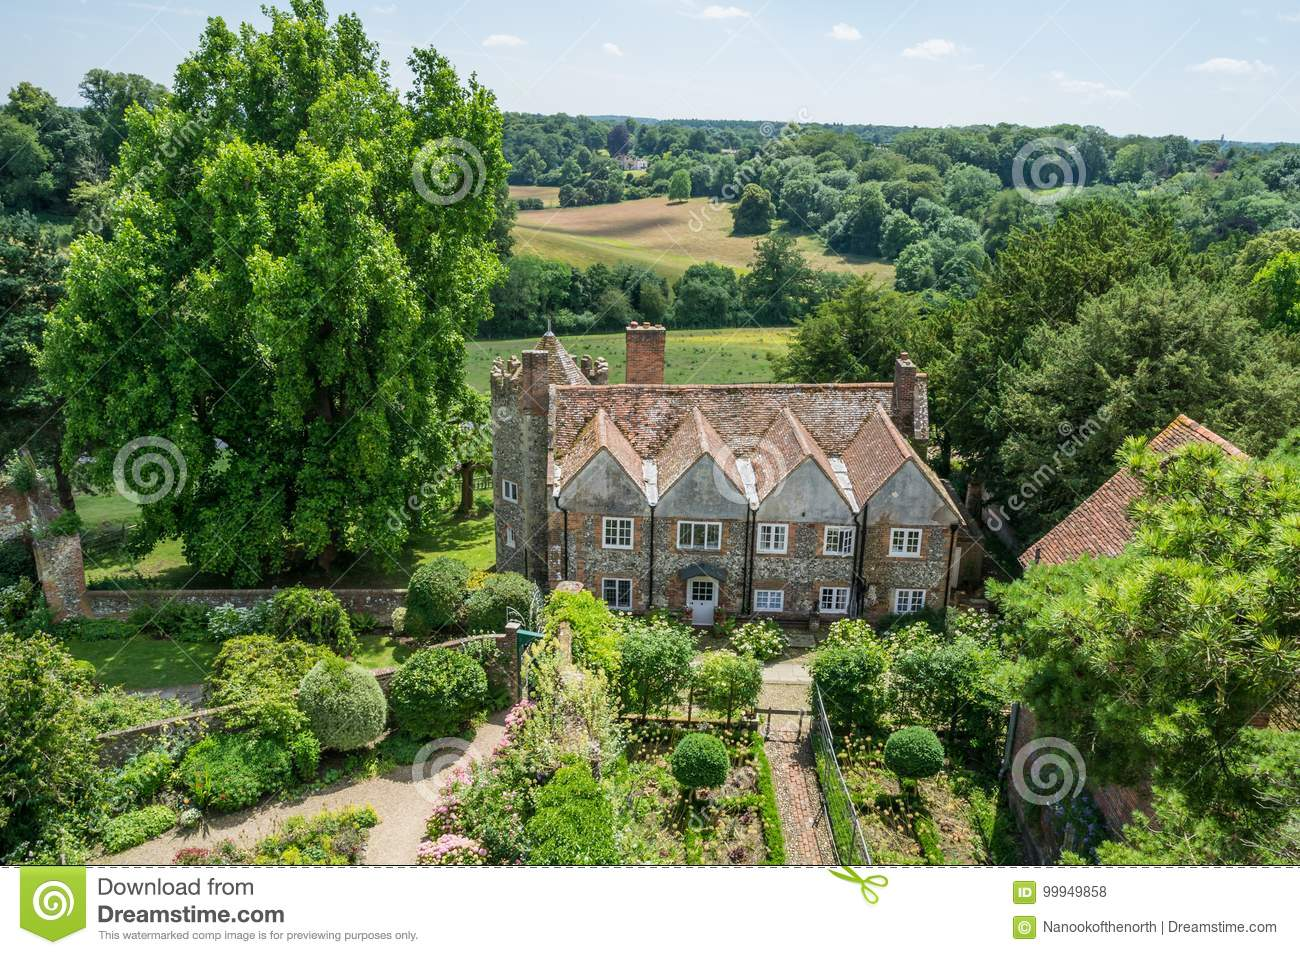 Aerial view of Greys Court, England